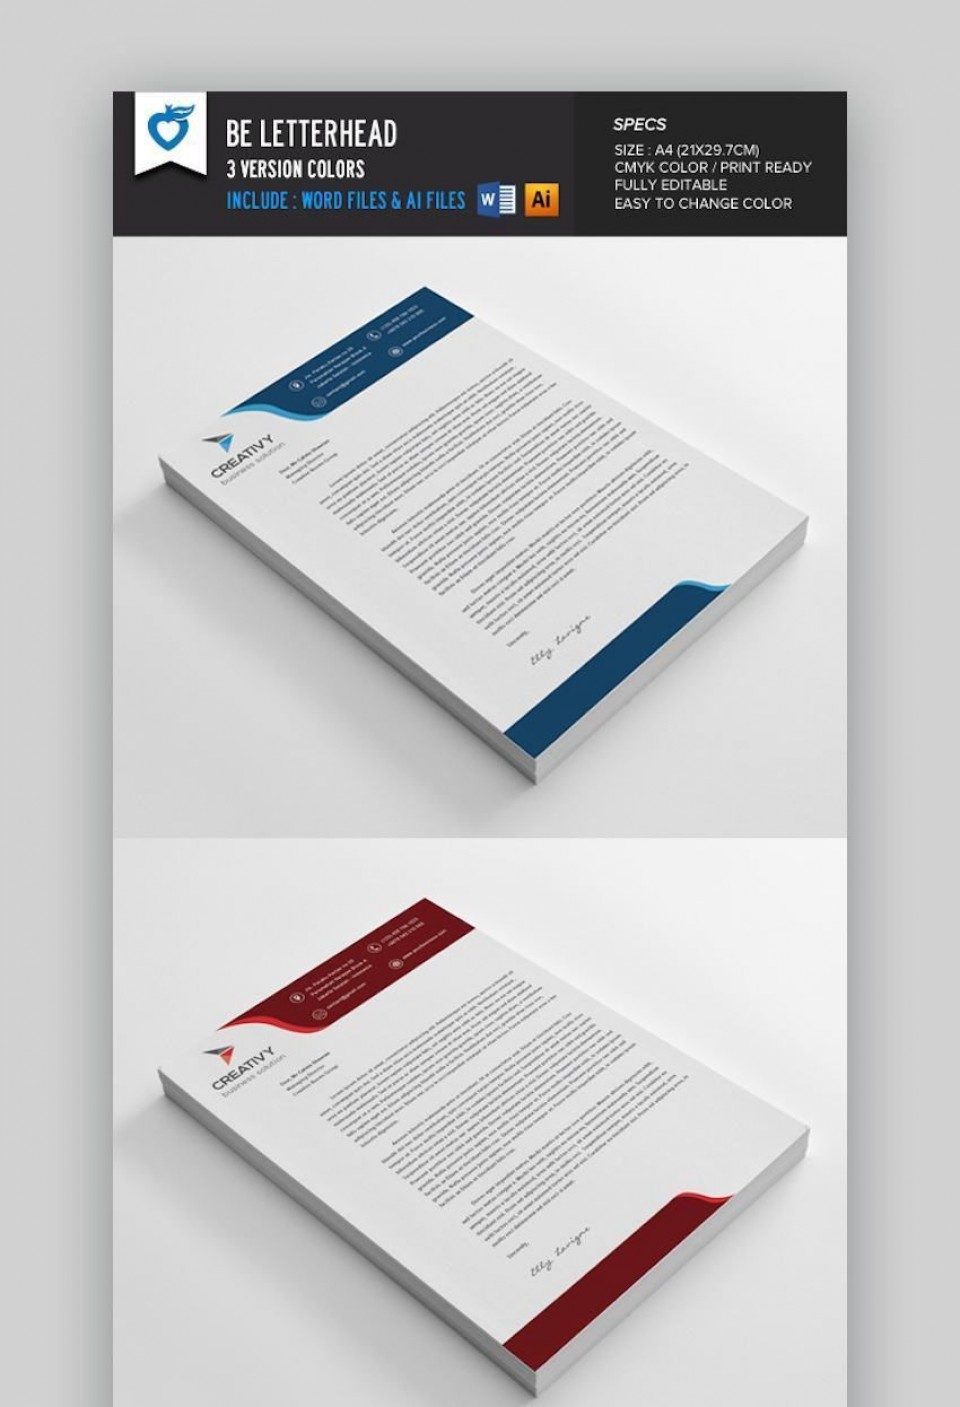 006 Fantastic Sample Letterhead Template Free Download Photo  Professional Design In Word Format960